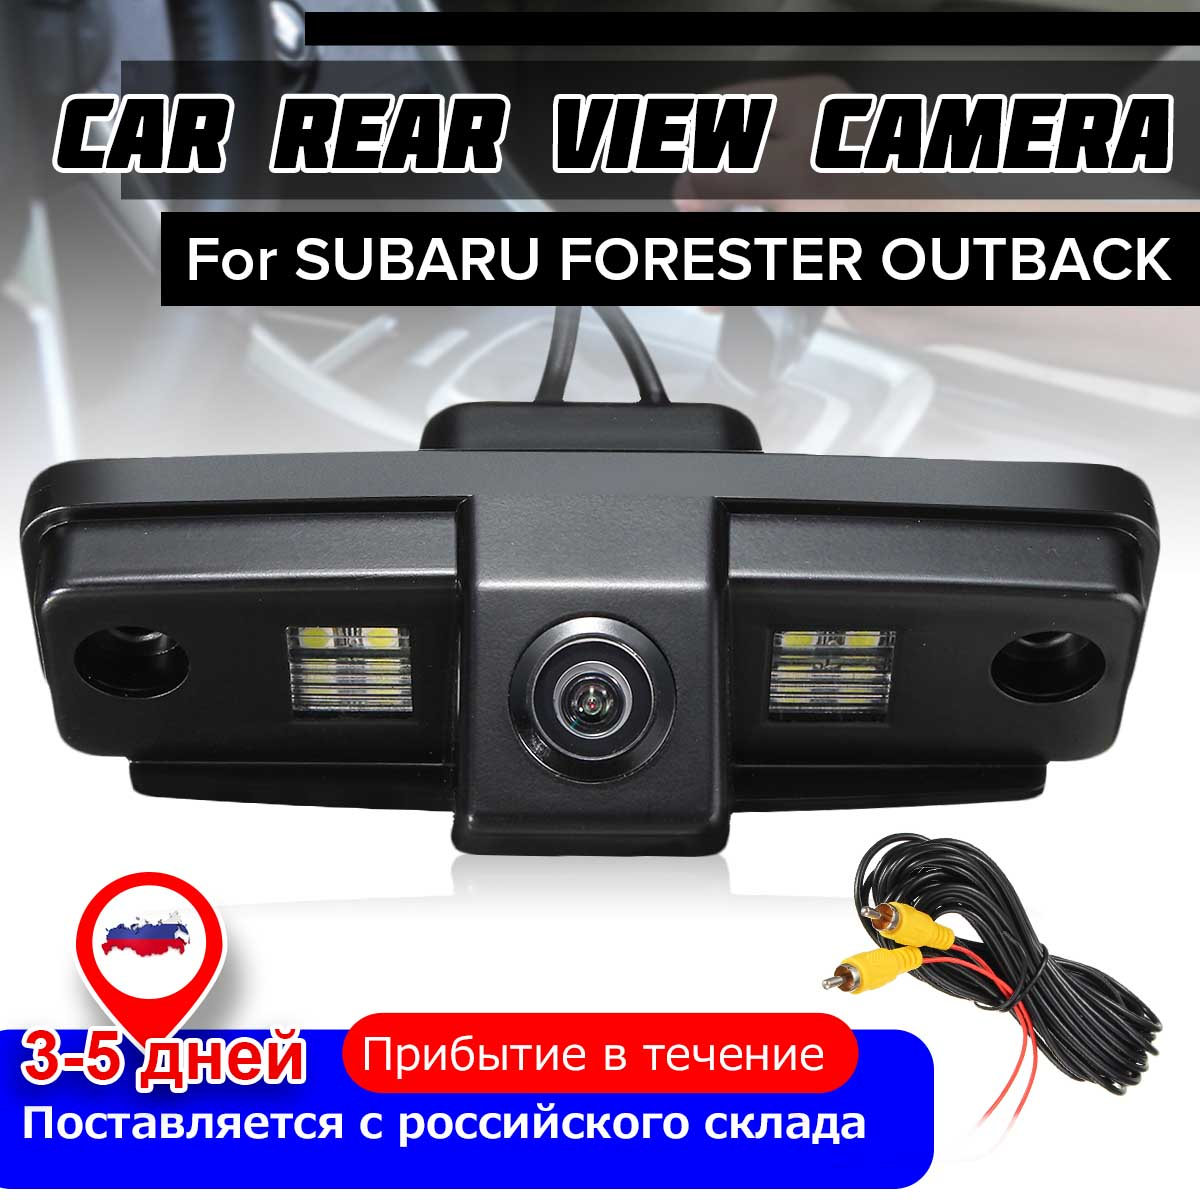 Car CCD Night Vision Backup Rear View Camera Parking Reverse Cameras For Subaru/Forester/Outback 2007-2012/Sedan/TribecaCar CCD Night Vision Backup Rear View Camera Parking Reverse Cameras For Subaru/Forester/Outback 2007-2012/Sedan/Tribeca